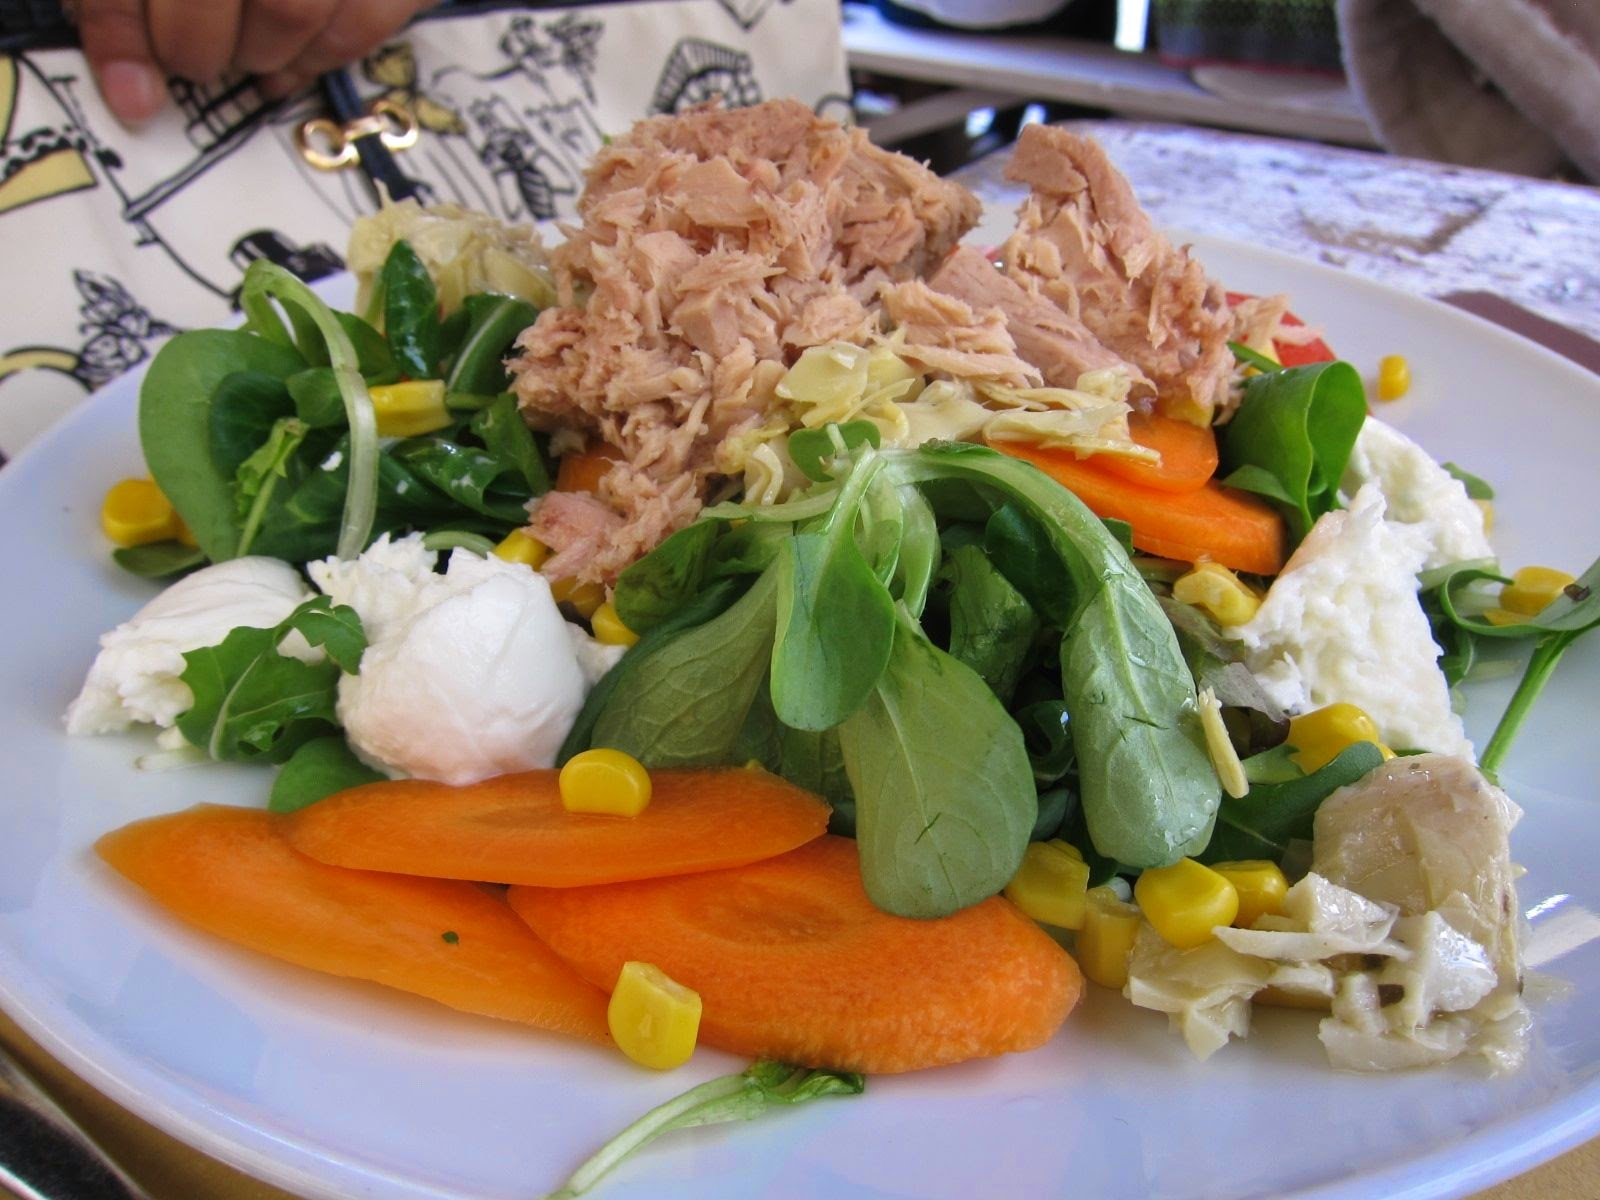 Tuna and mozzarella salad